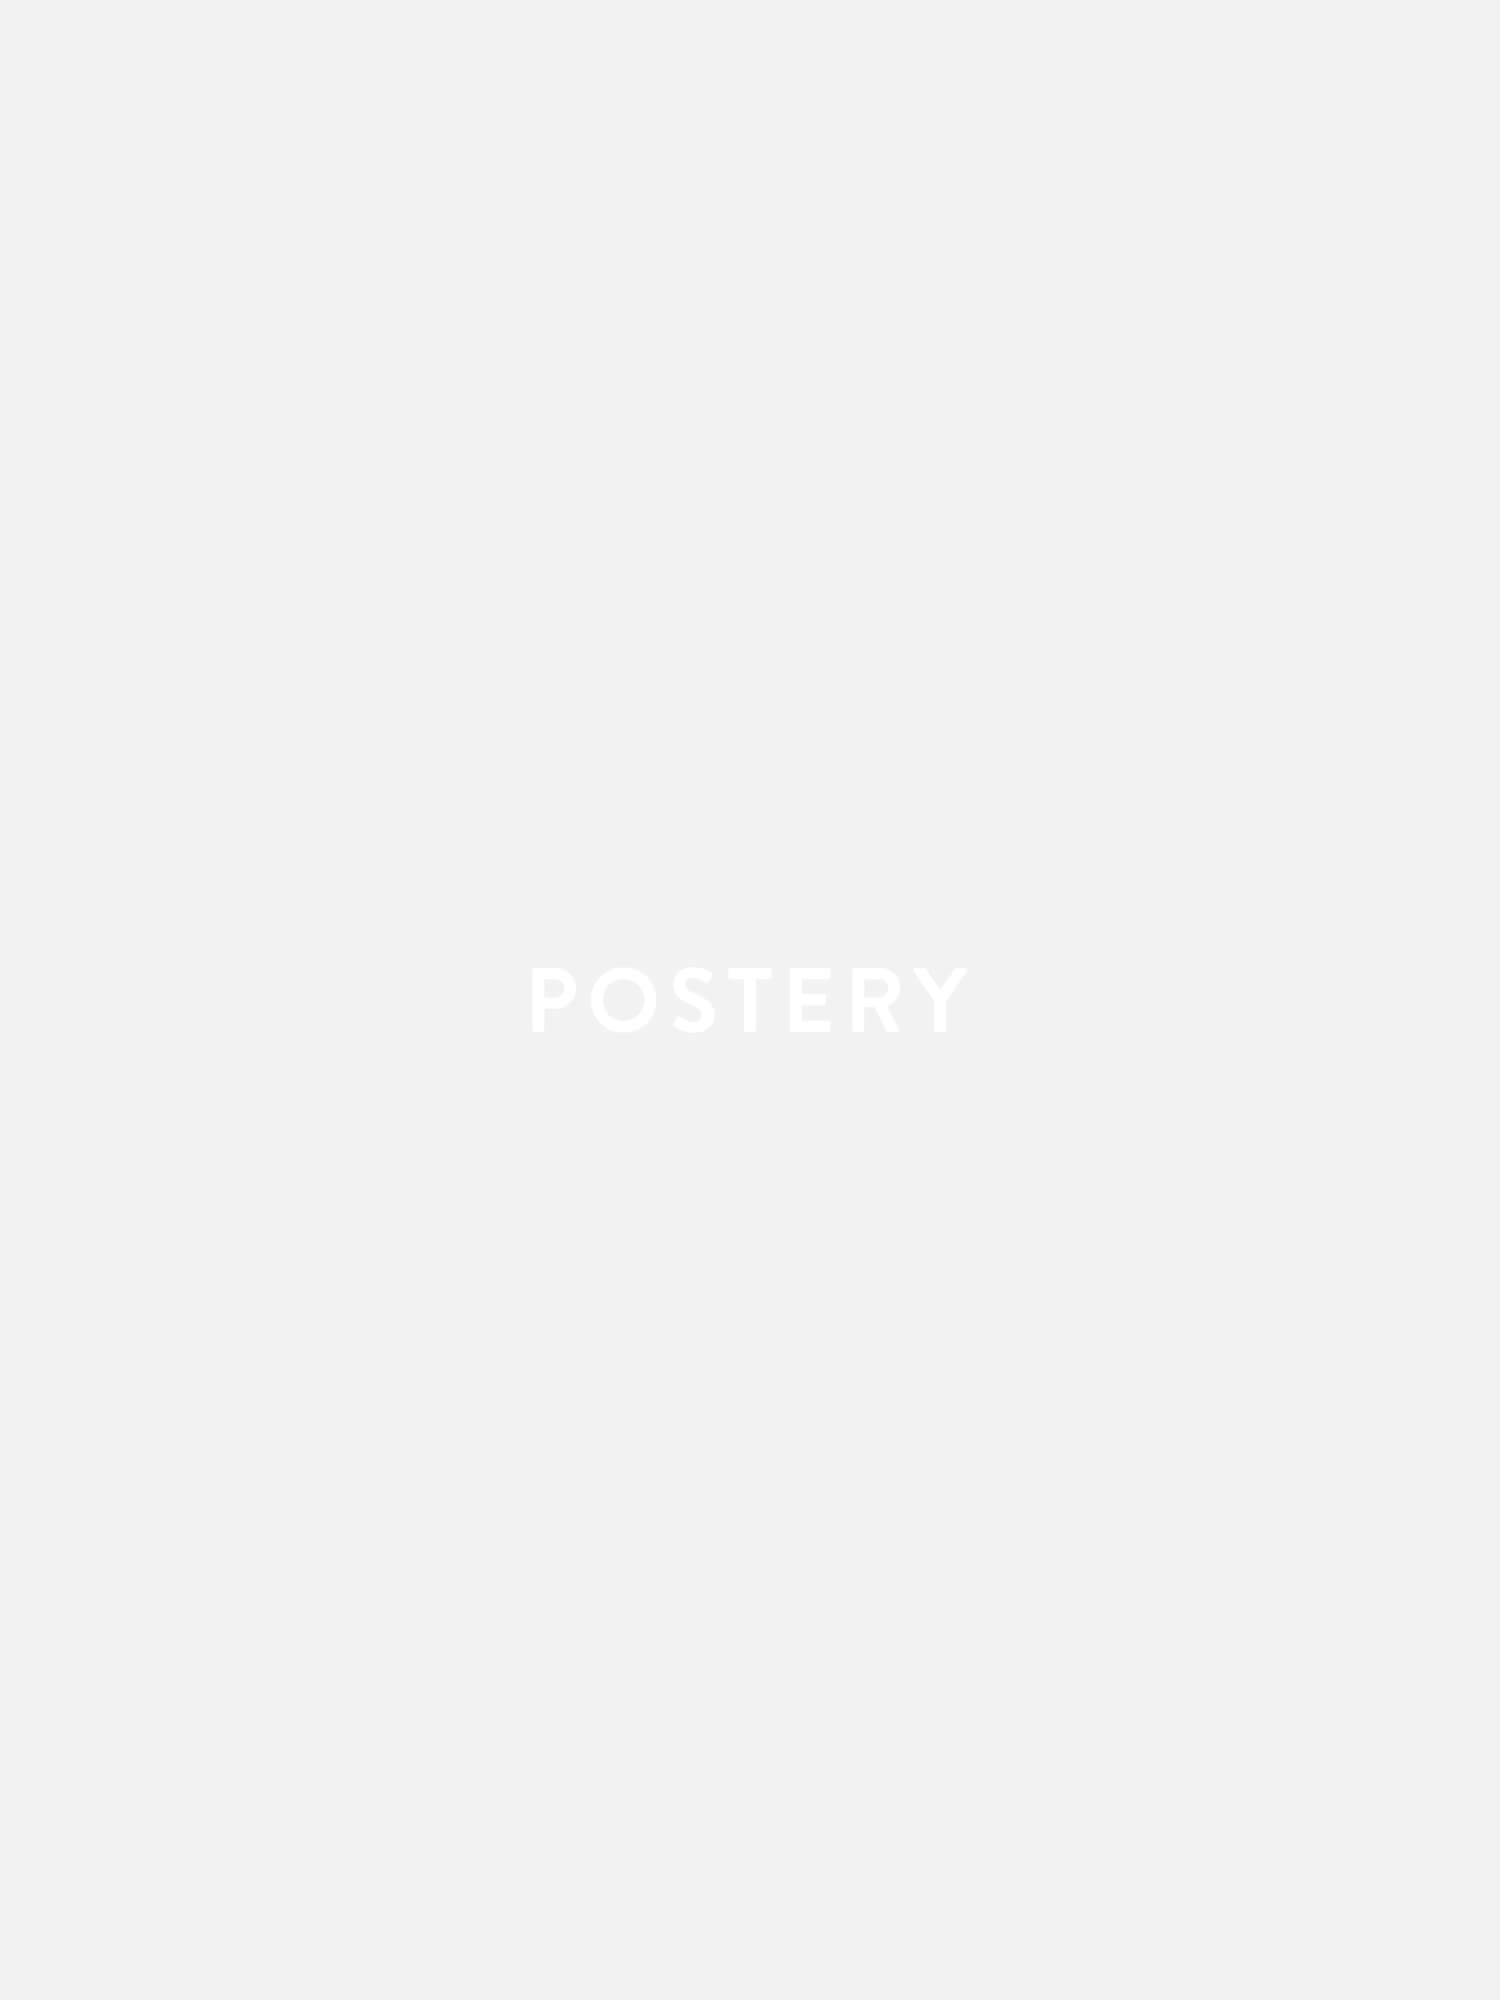 Hungry Leopard Poster 2